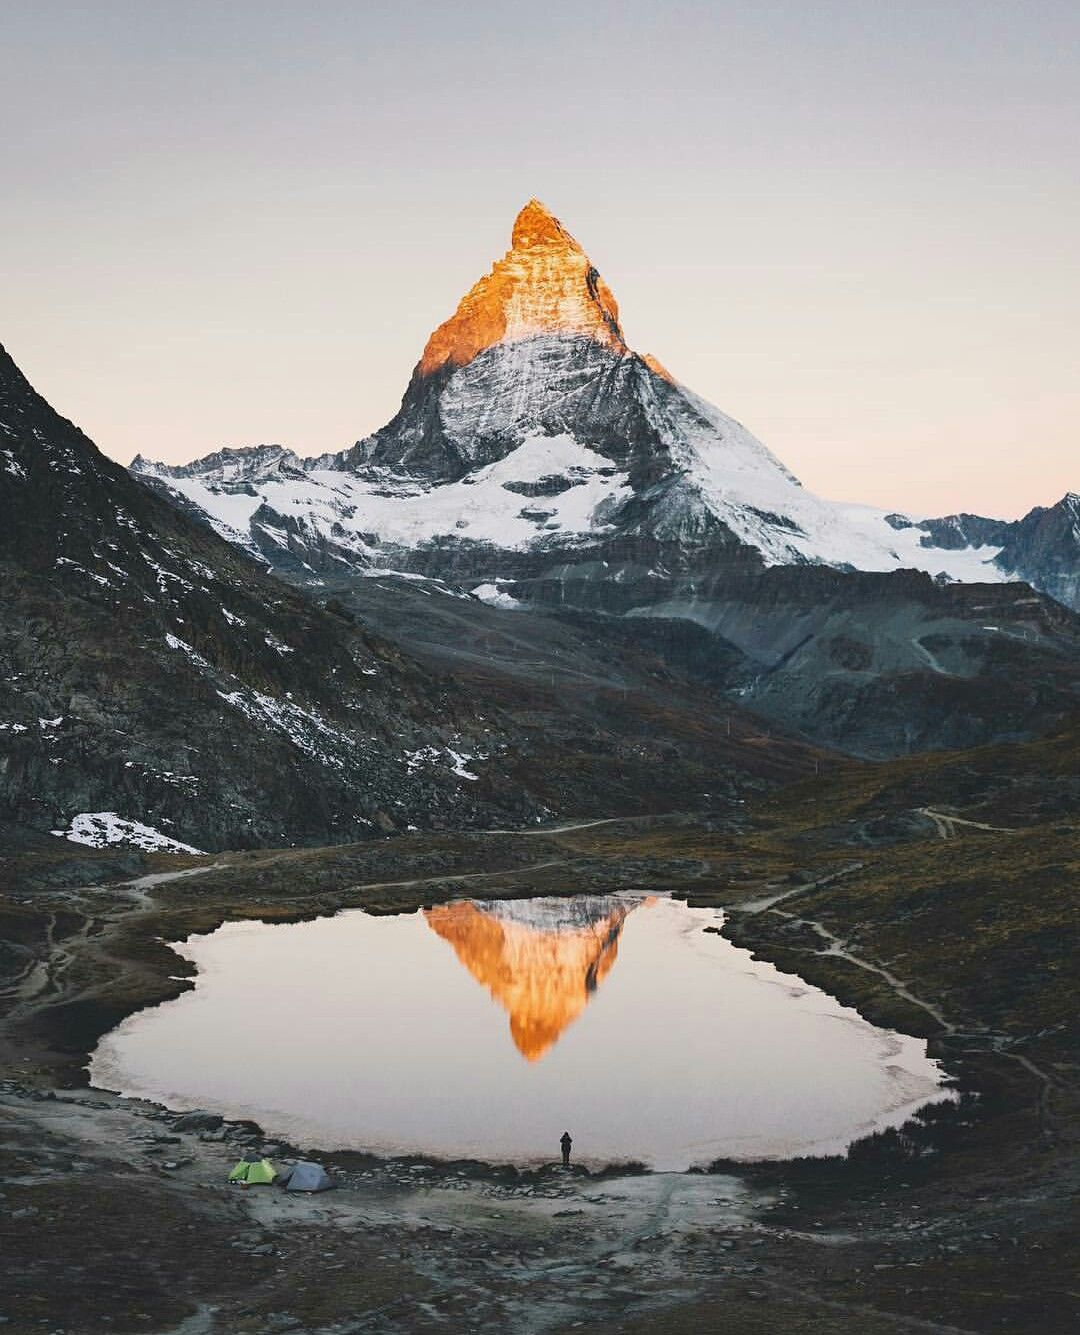 The Matterhorn in Valais, Switzerland